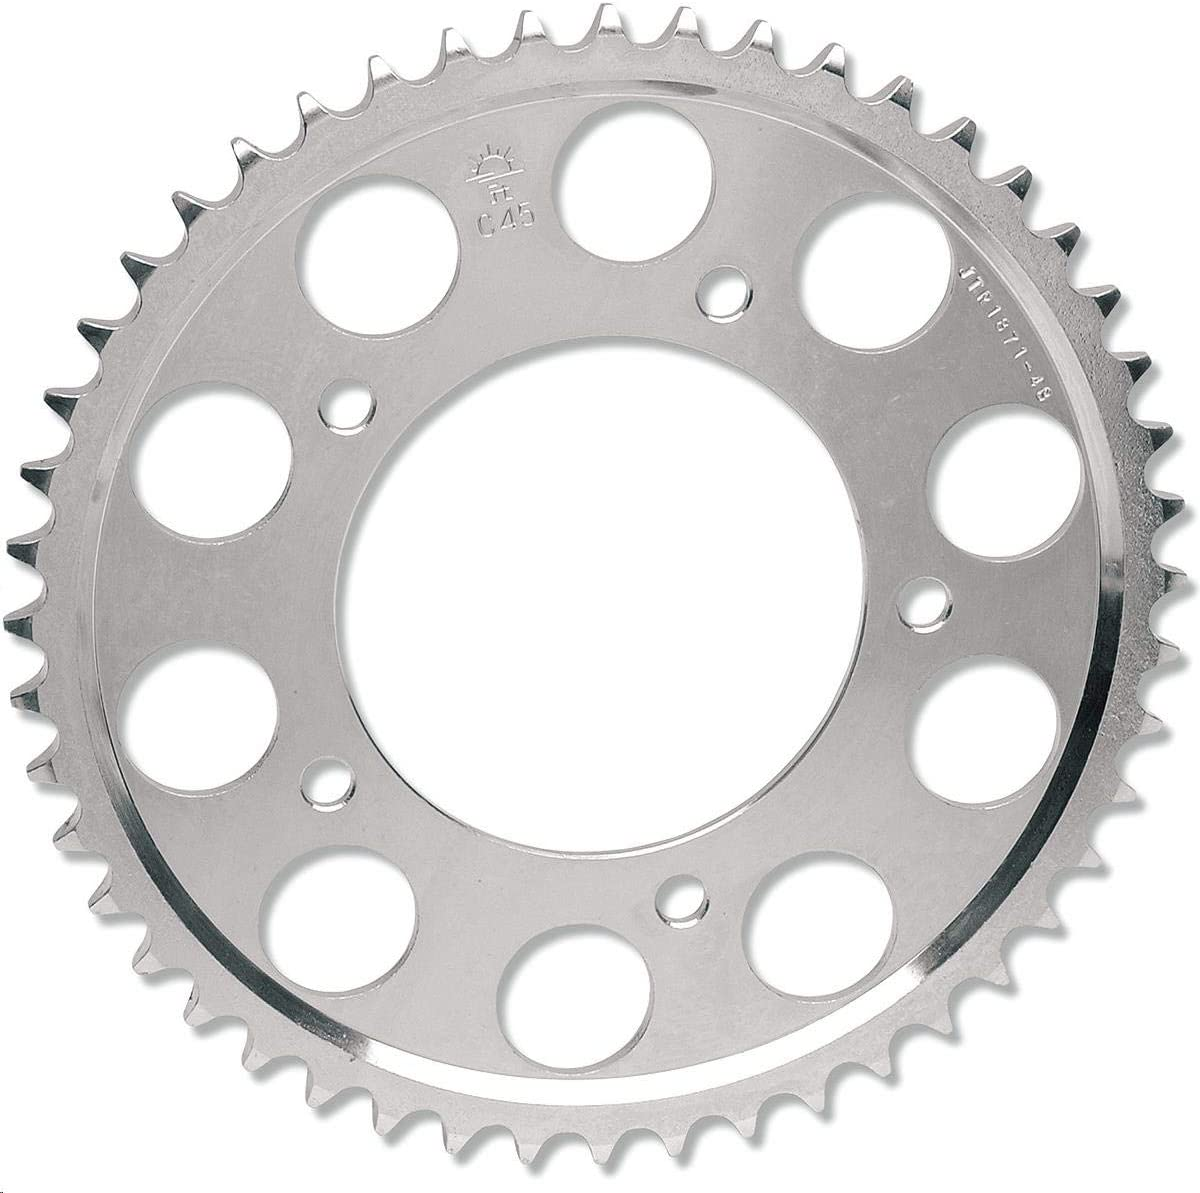 JT Sprockets NEW before selling JTR251.49SC 49 Tooth Popularity Rear Steel Self-Cleaning Sproc